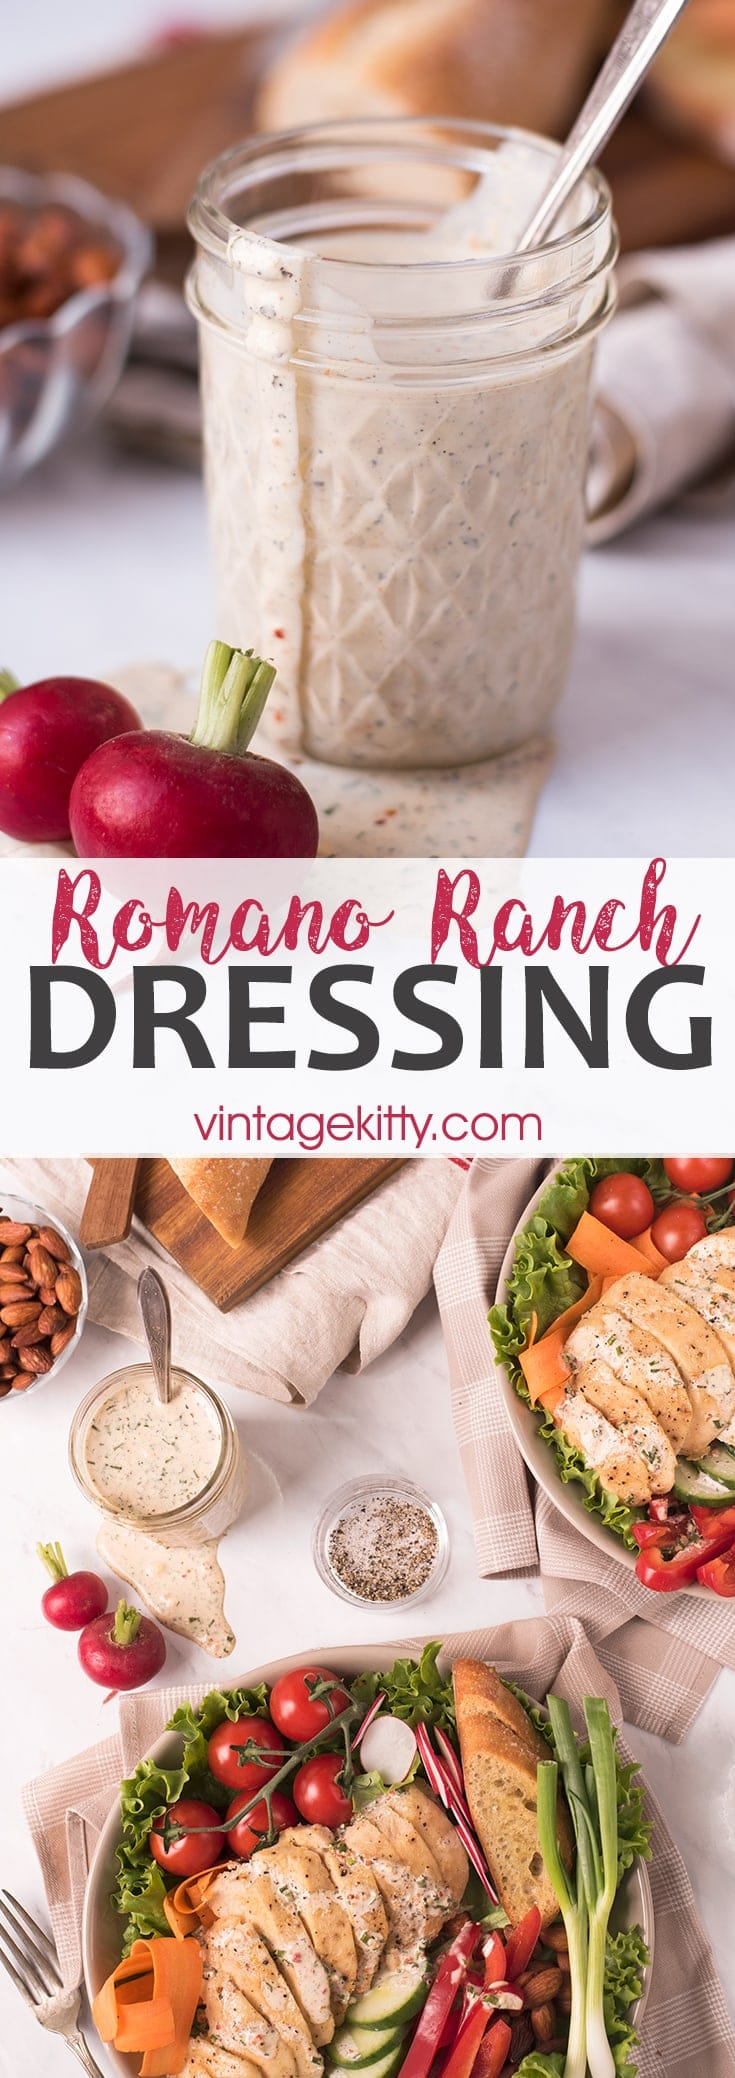 Ranch Dressing Pin - Homemade Ranch Dressing From Scratch